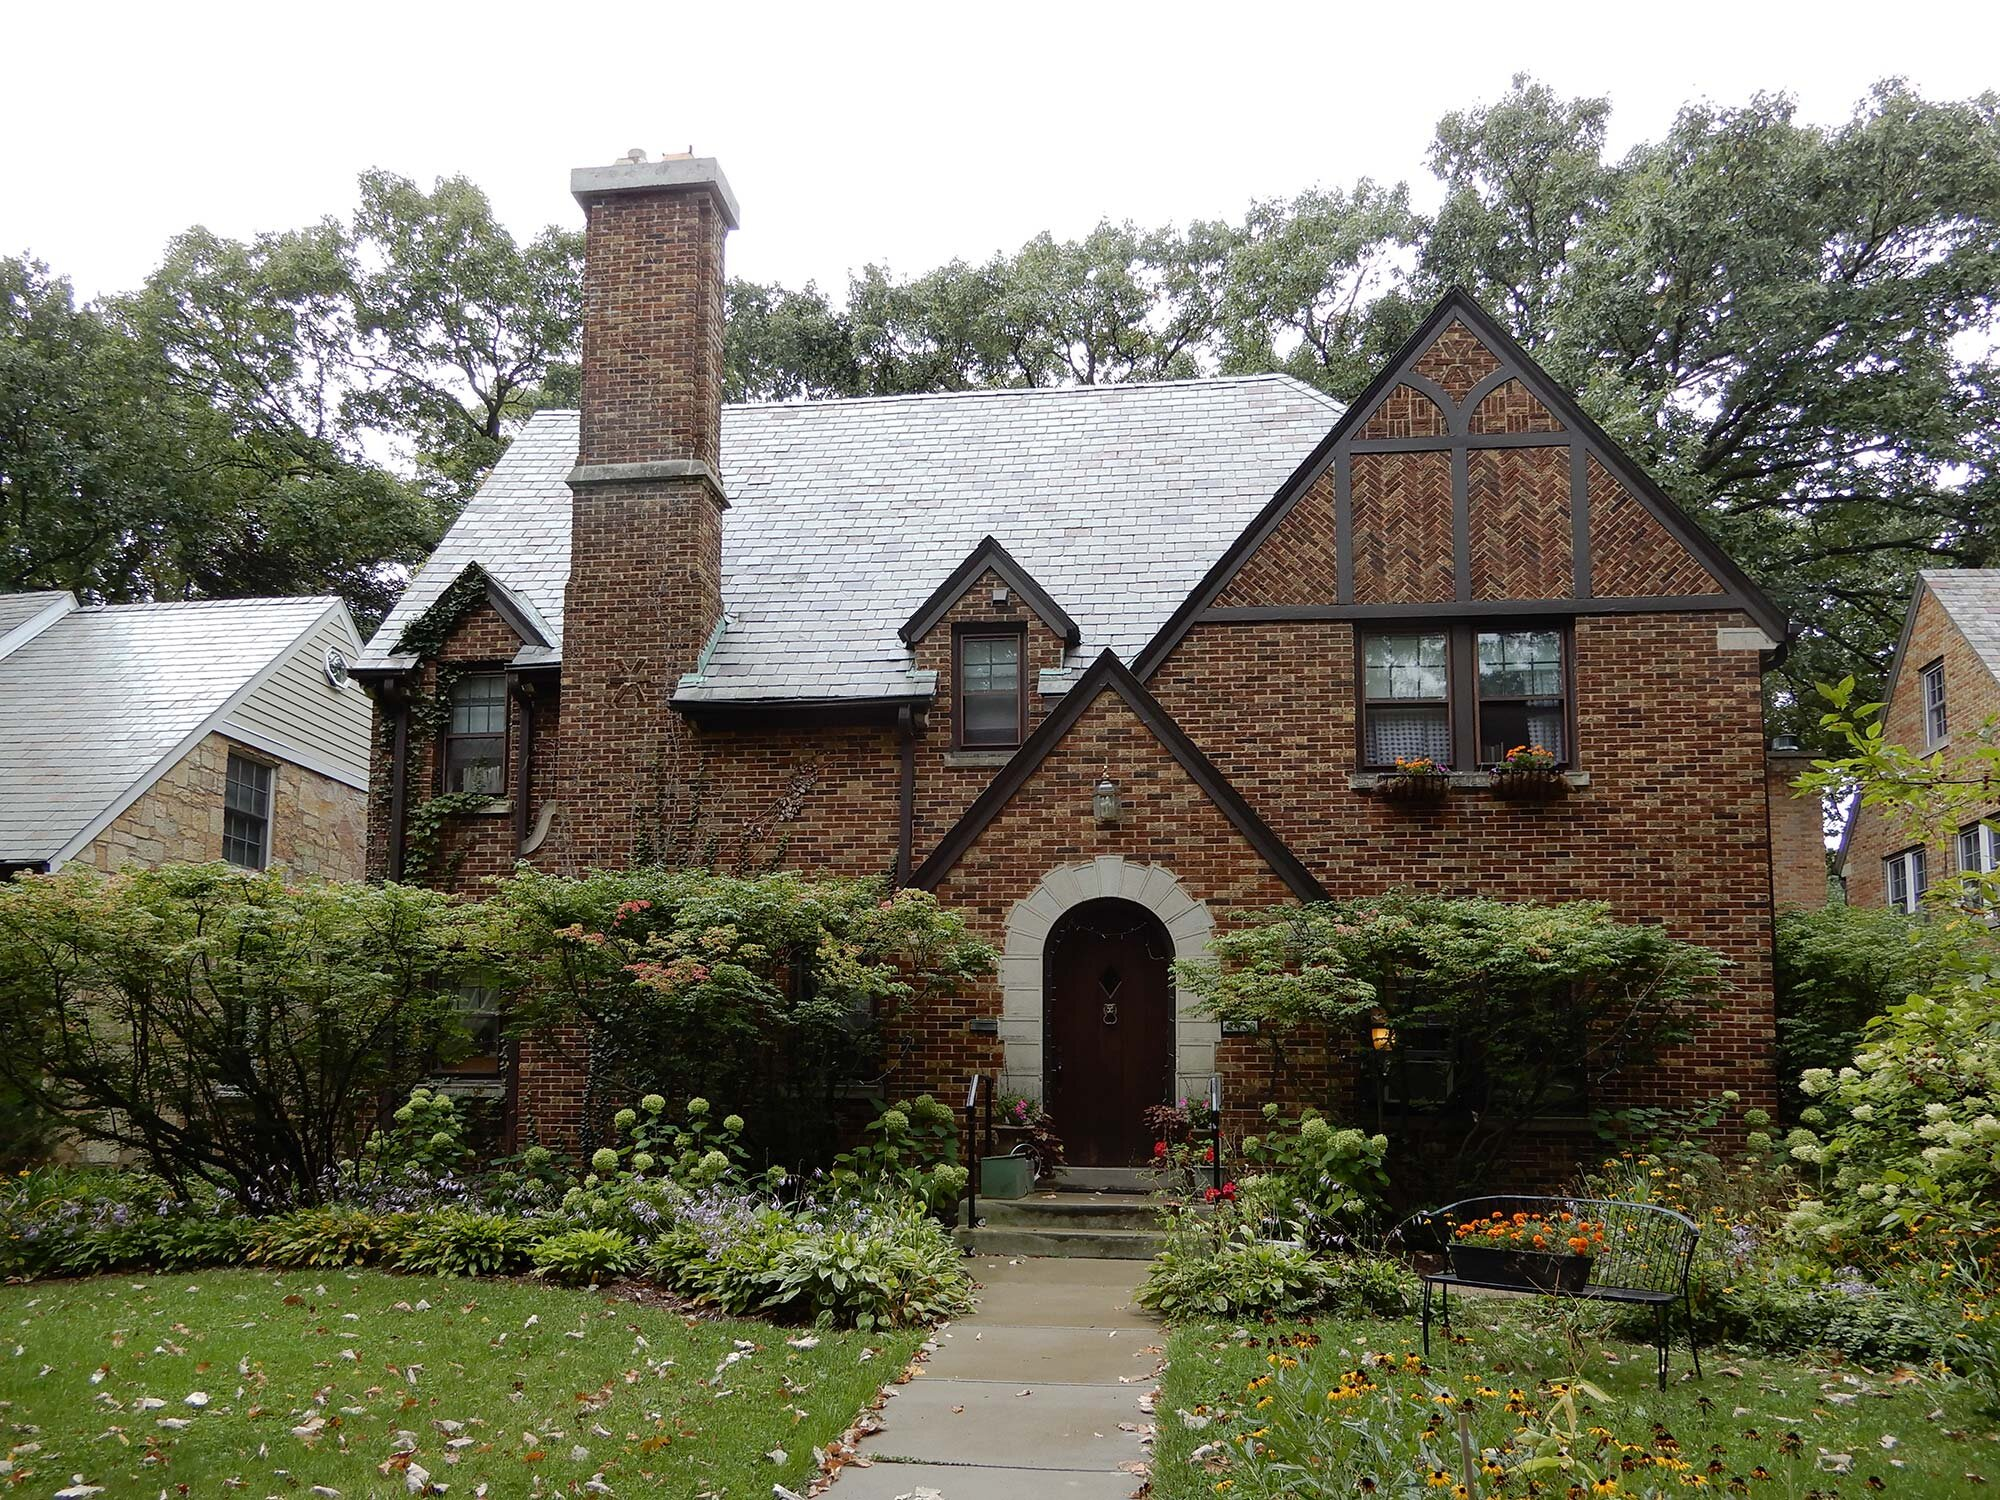 Bertha Yerex Whitman designed this fine single-family house, built in 1930 at 2430 Central Park Avenue in Evanston, Illinois. Photo by Julia Bachrach.